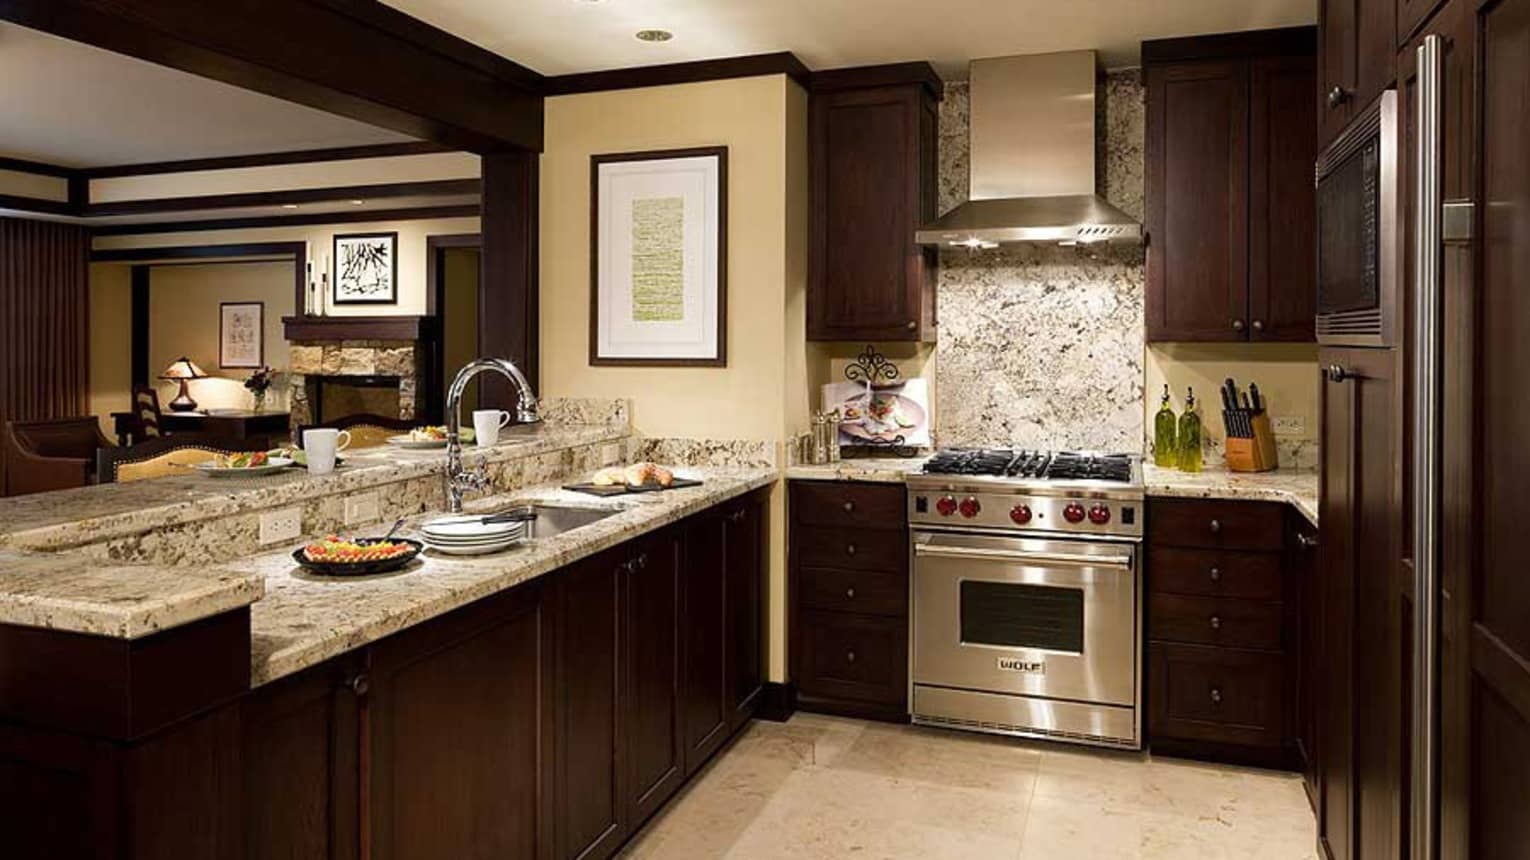 Kitchen with dark wood cupboards, marble counters, stainless steel stove